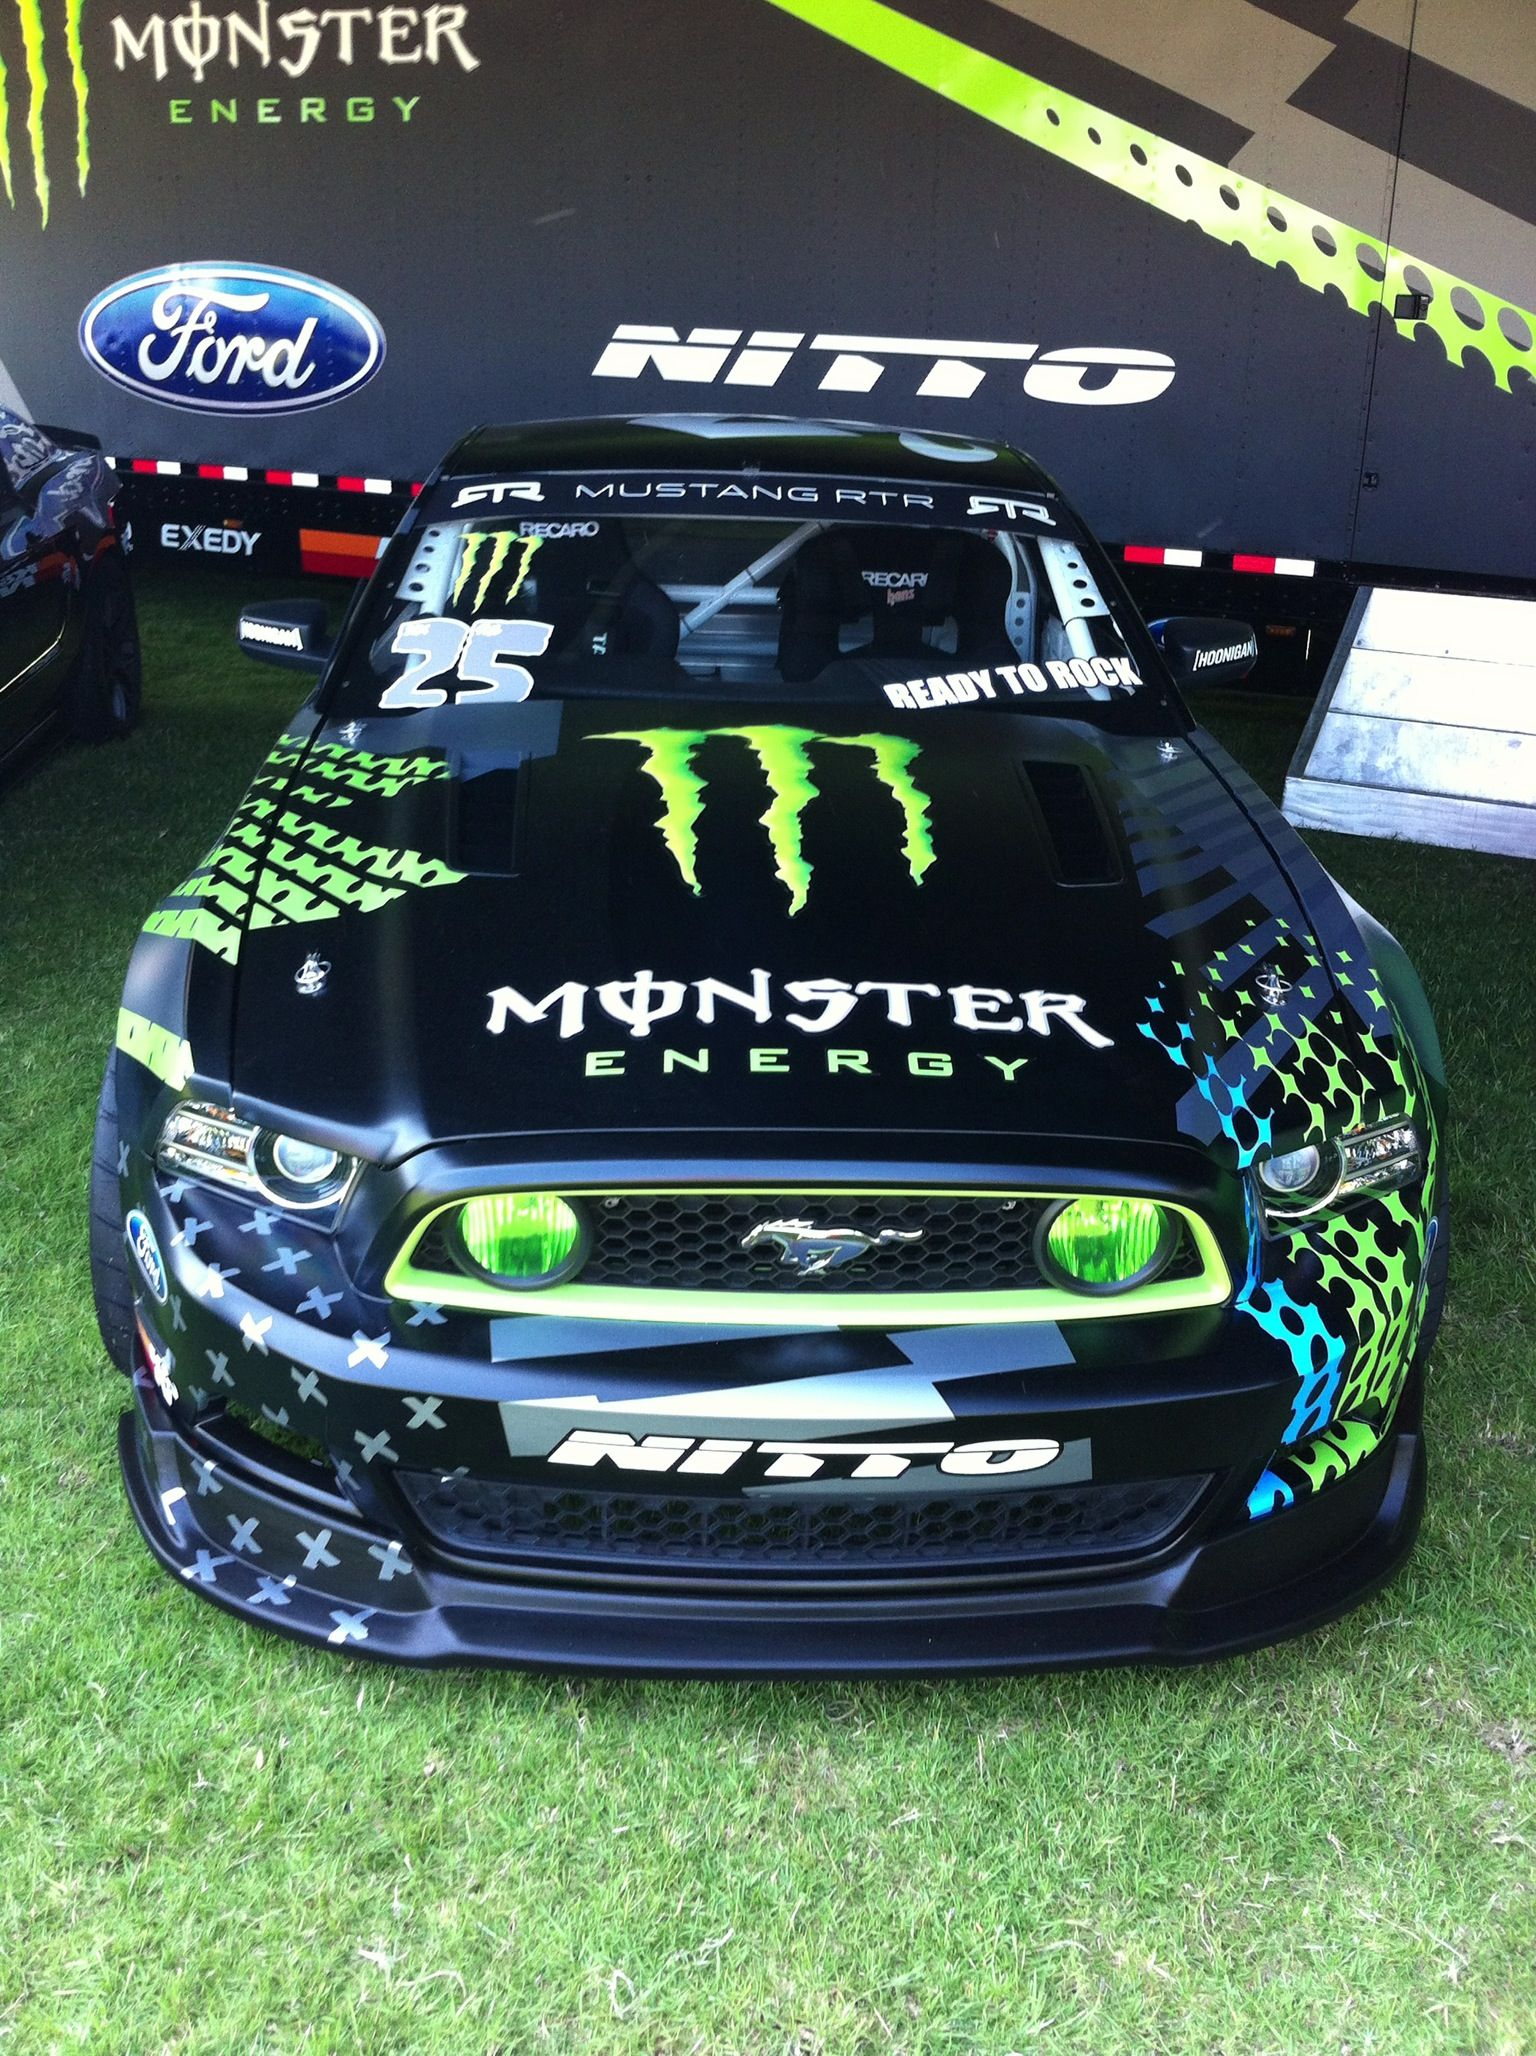 The Monster Energy Drift Mustang At The Fabulous Fords Show